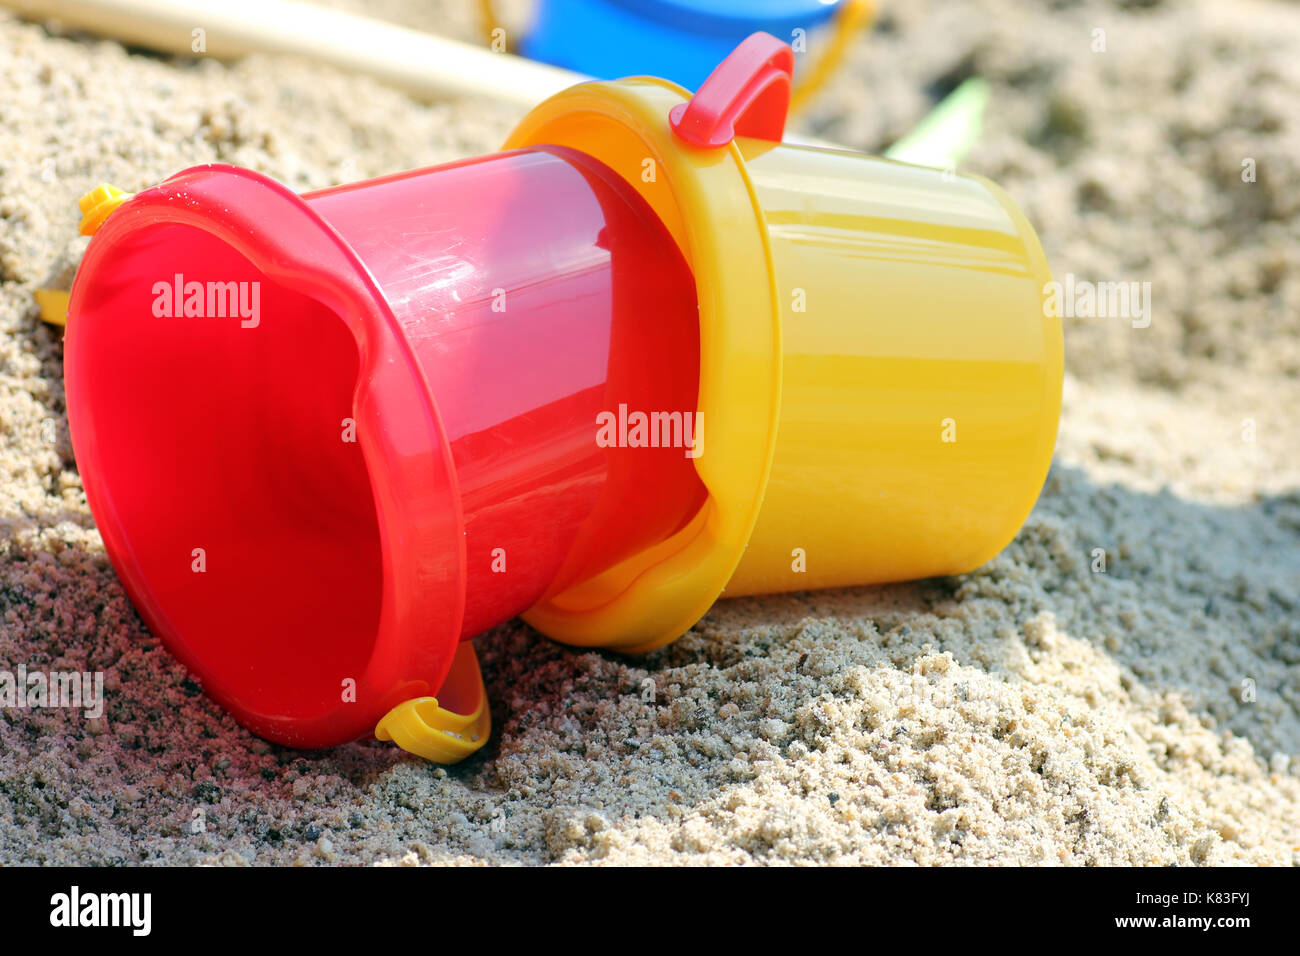 Spielzeug Sandkasten Sandkasten Stock Photos And Sandkasten Stock Images Alamy